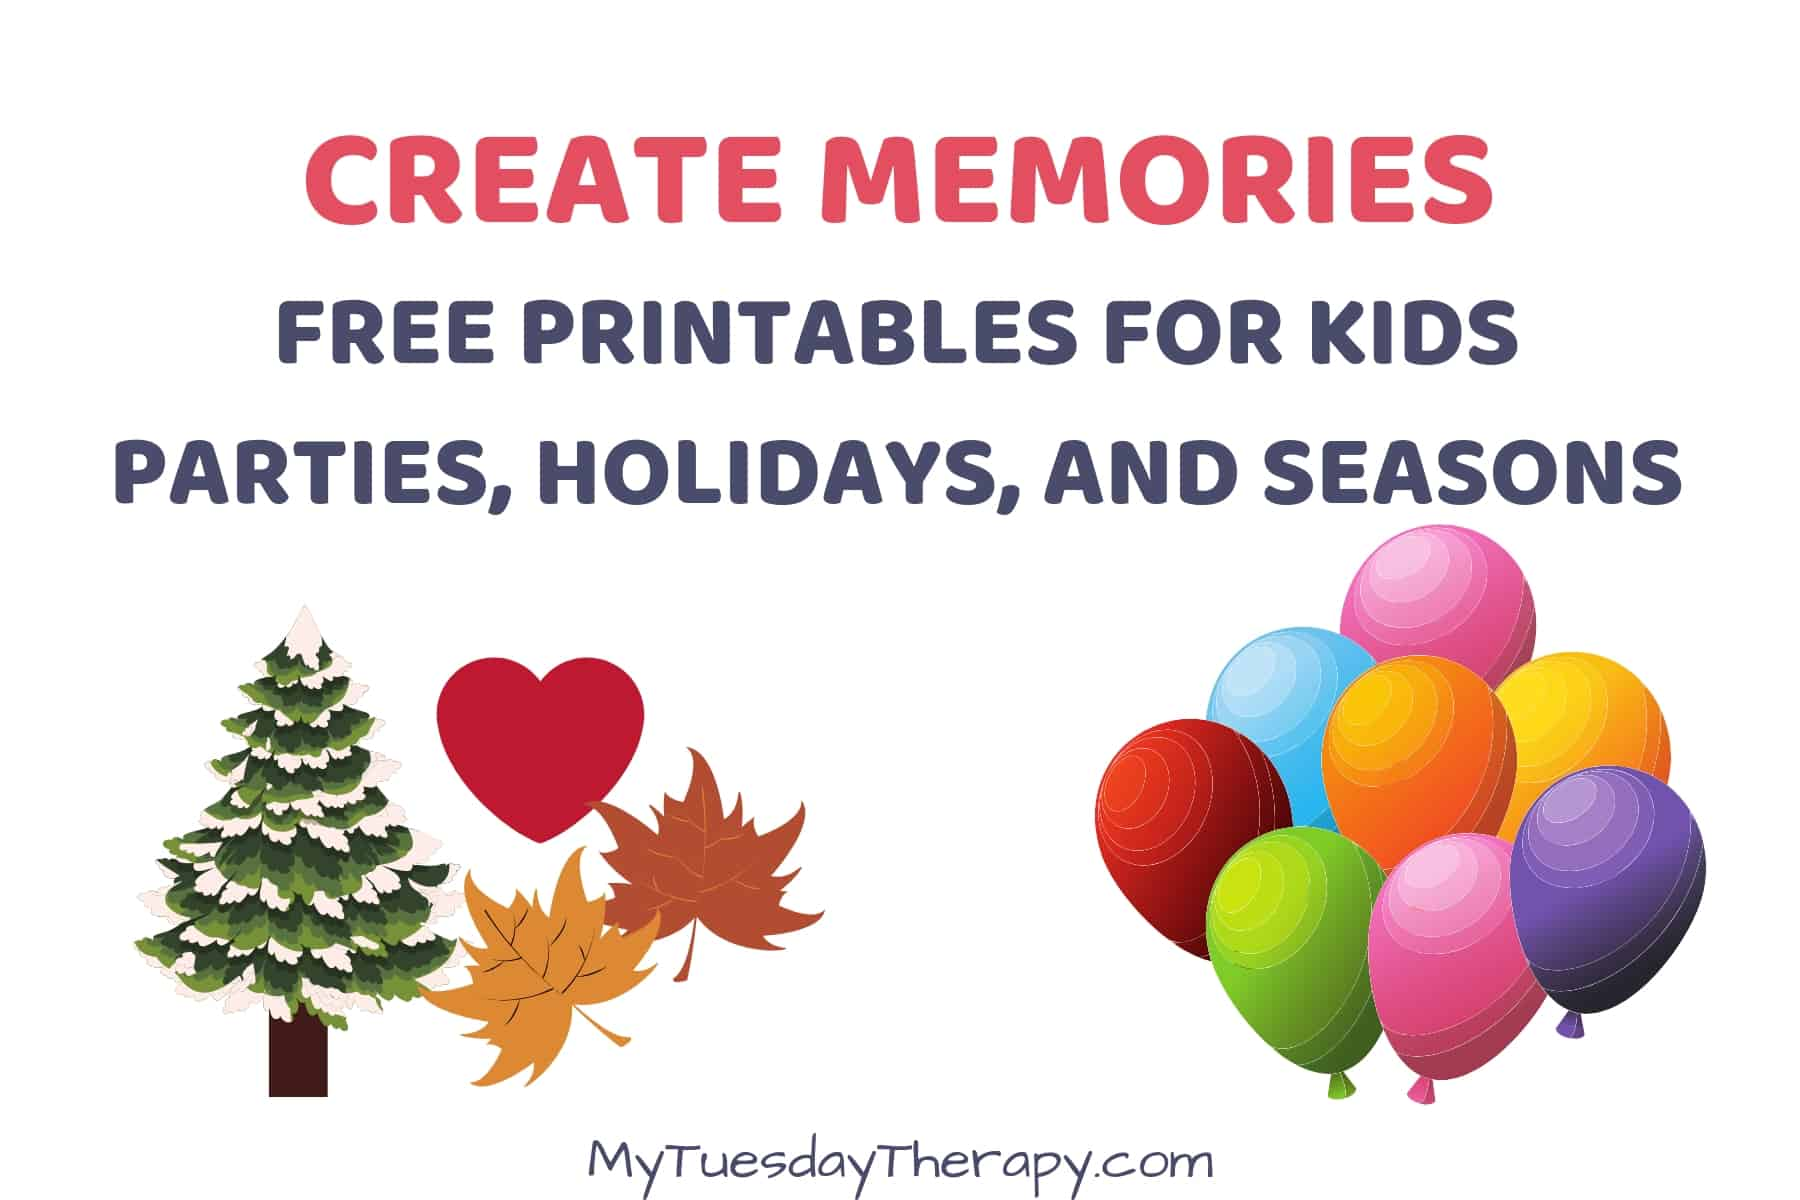 Create Memories. Free Printables for Kids Parties, Holidays, and Seasons.